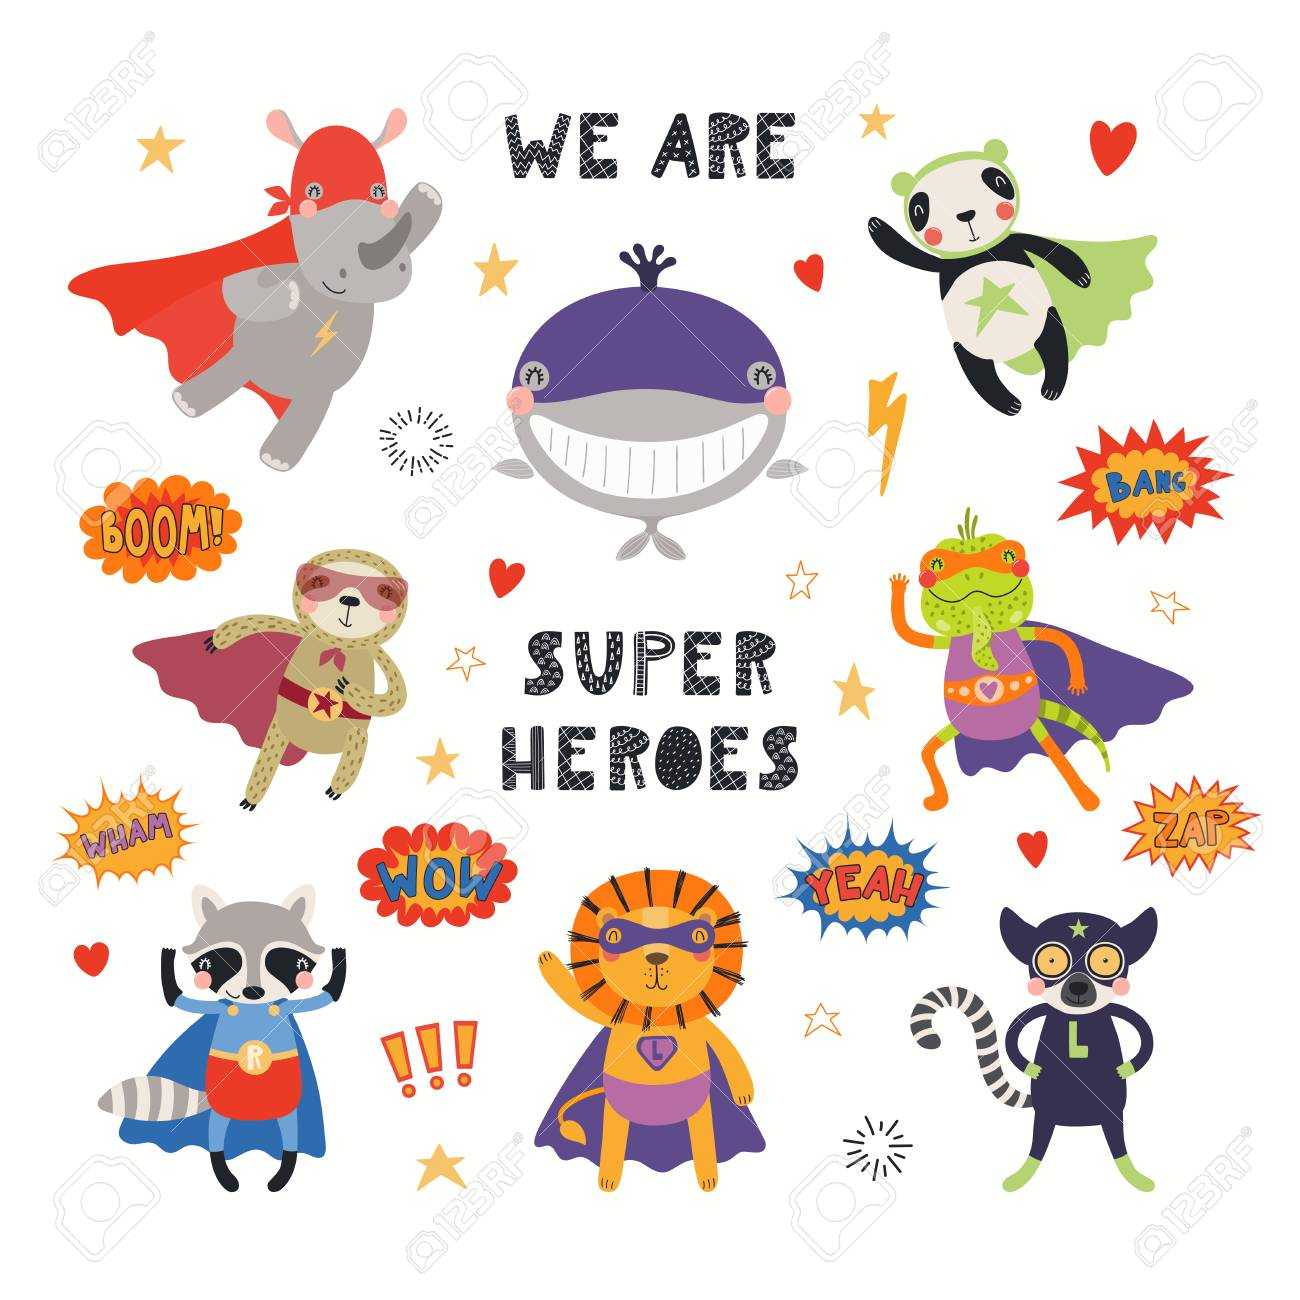 Big set of cute animal superheroes, with quote We are superheroes. Isolated objects on white background. Hand drawn vector illustration. Scandinavian style flat design. Concept for children print. - 120445424